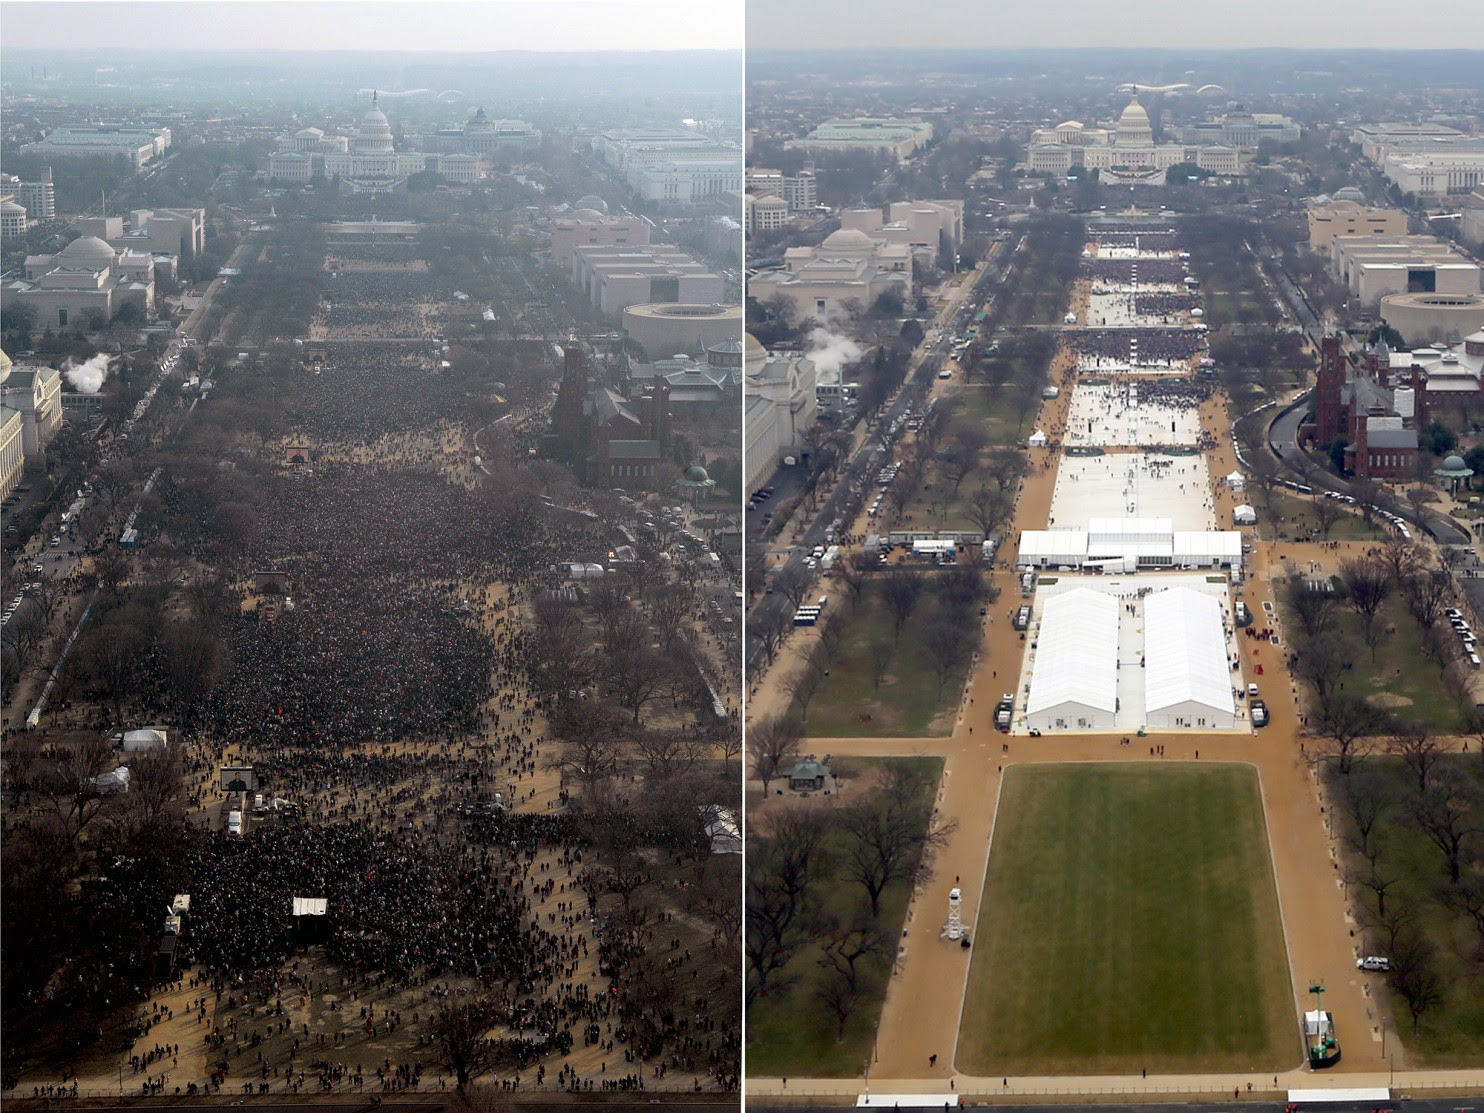 National Park Service photos show Donald Trump's inauguration crowd in January and Barack Obama's in 2009. (Credit: National Park Service)